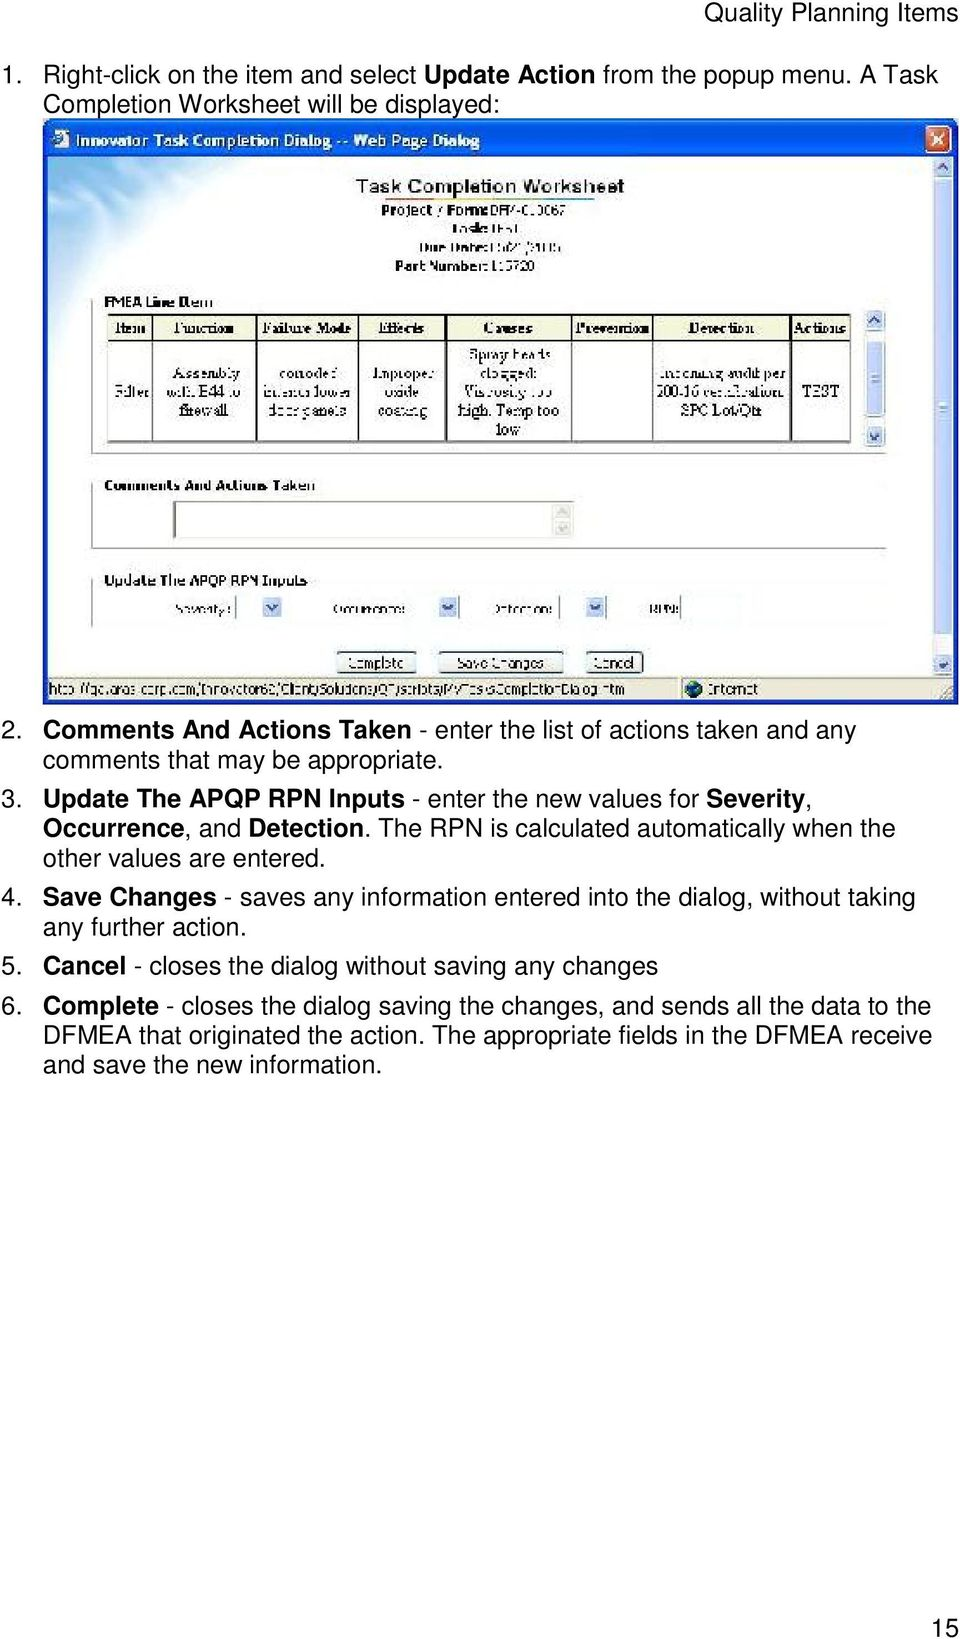 Update The APQP RPN Inputs - enter the new values for Severity, Occurrence, and Detection. The RPN is calculated automatically when the other values are entered. 4.